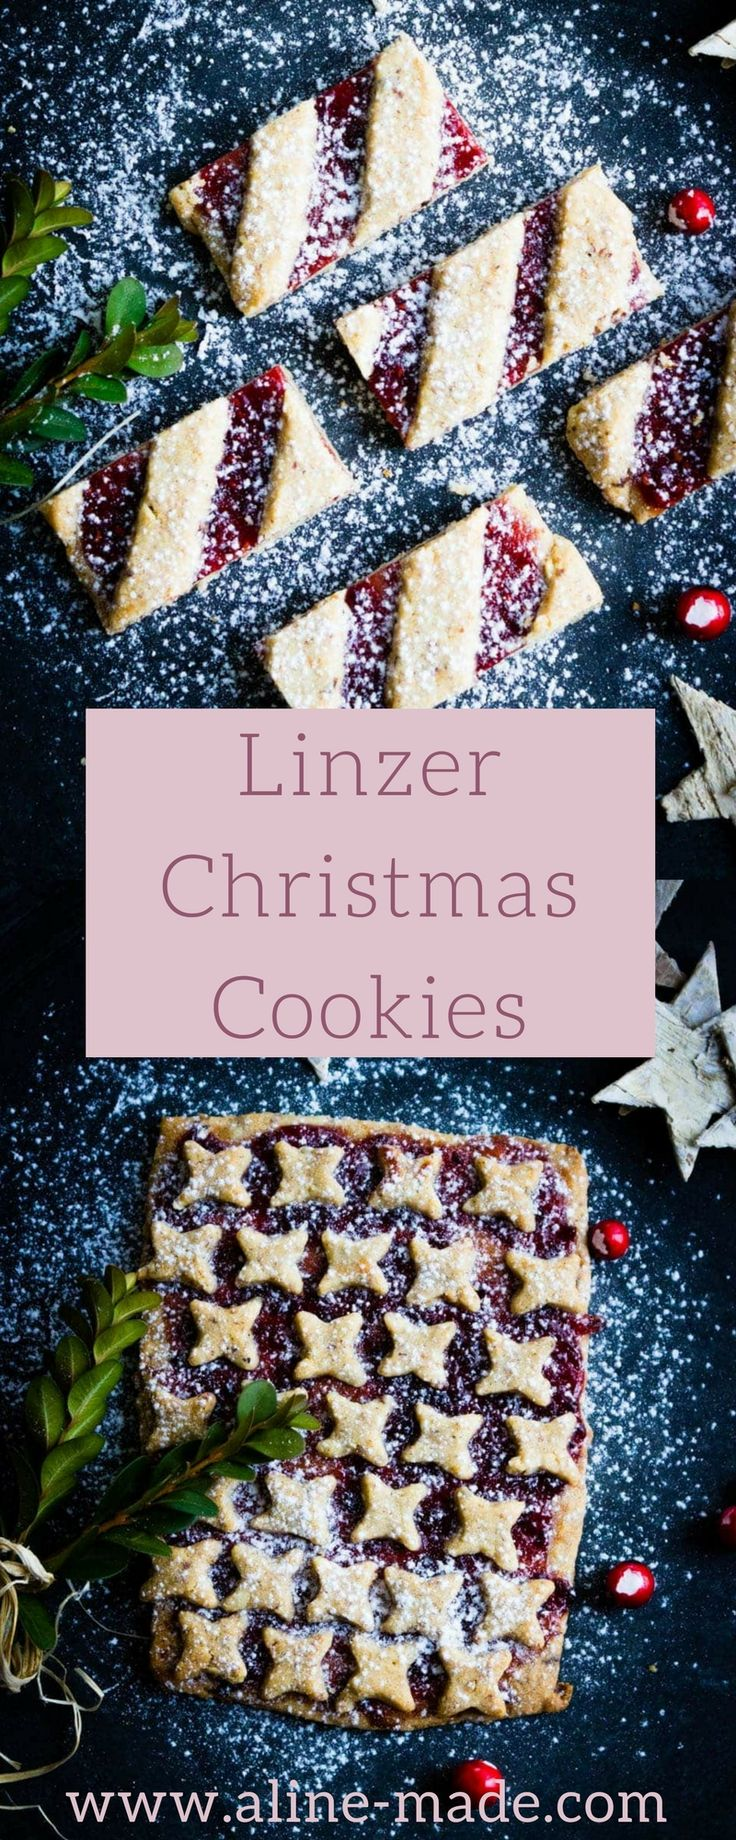 The recipe for this Linzer Christmas Cookies is almost the same than for the Linzer Torte. But instead of doing it in a tart form, you make a few cookies which you can cut, after baking, into small bite-sized pieces.